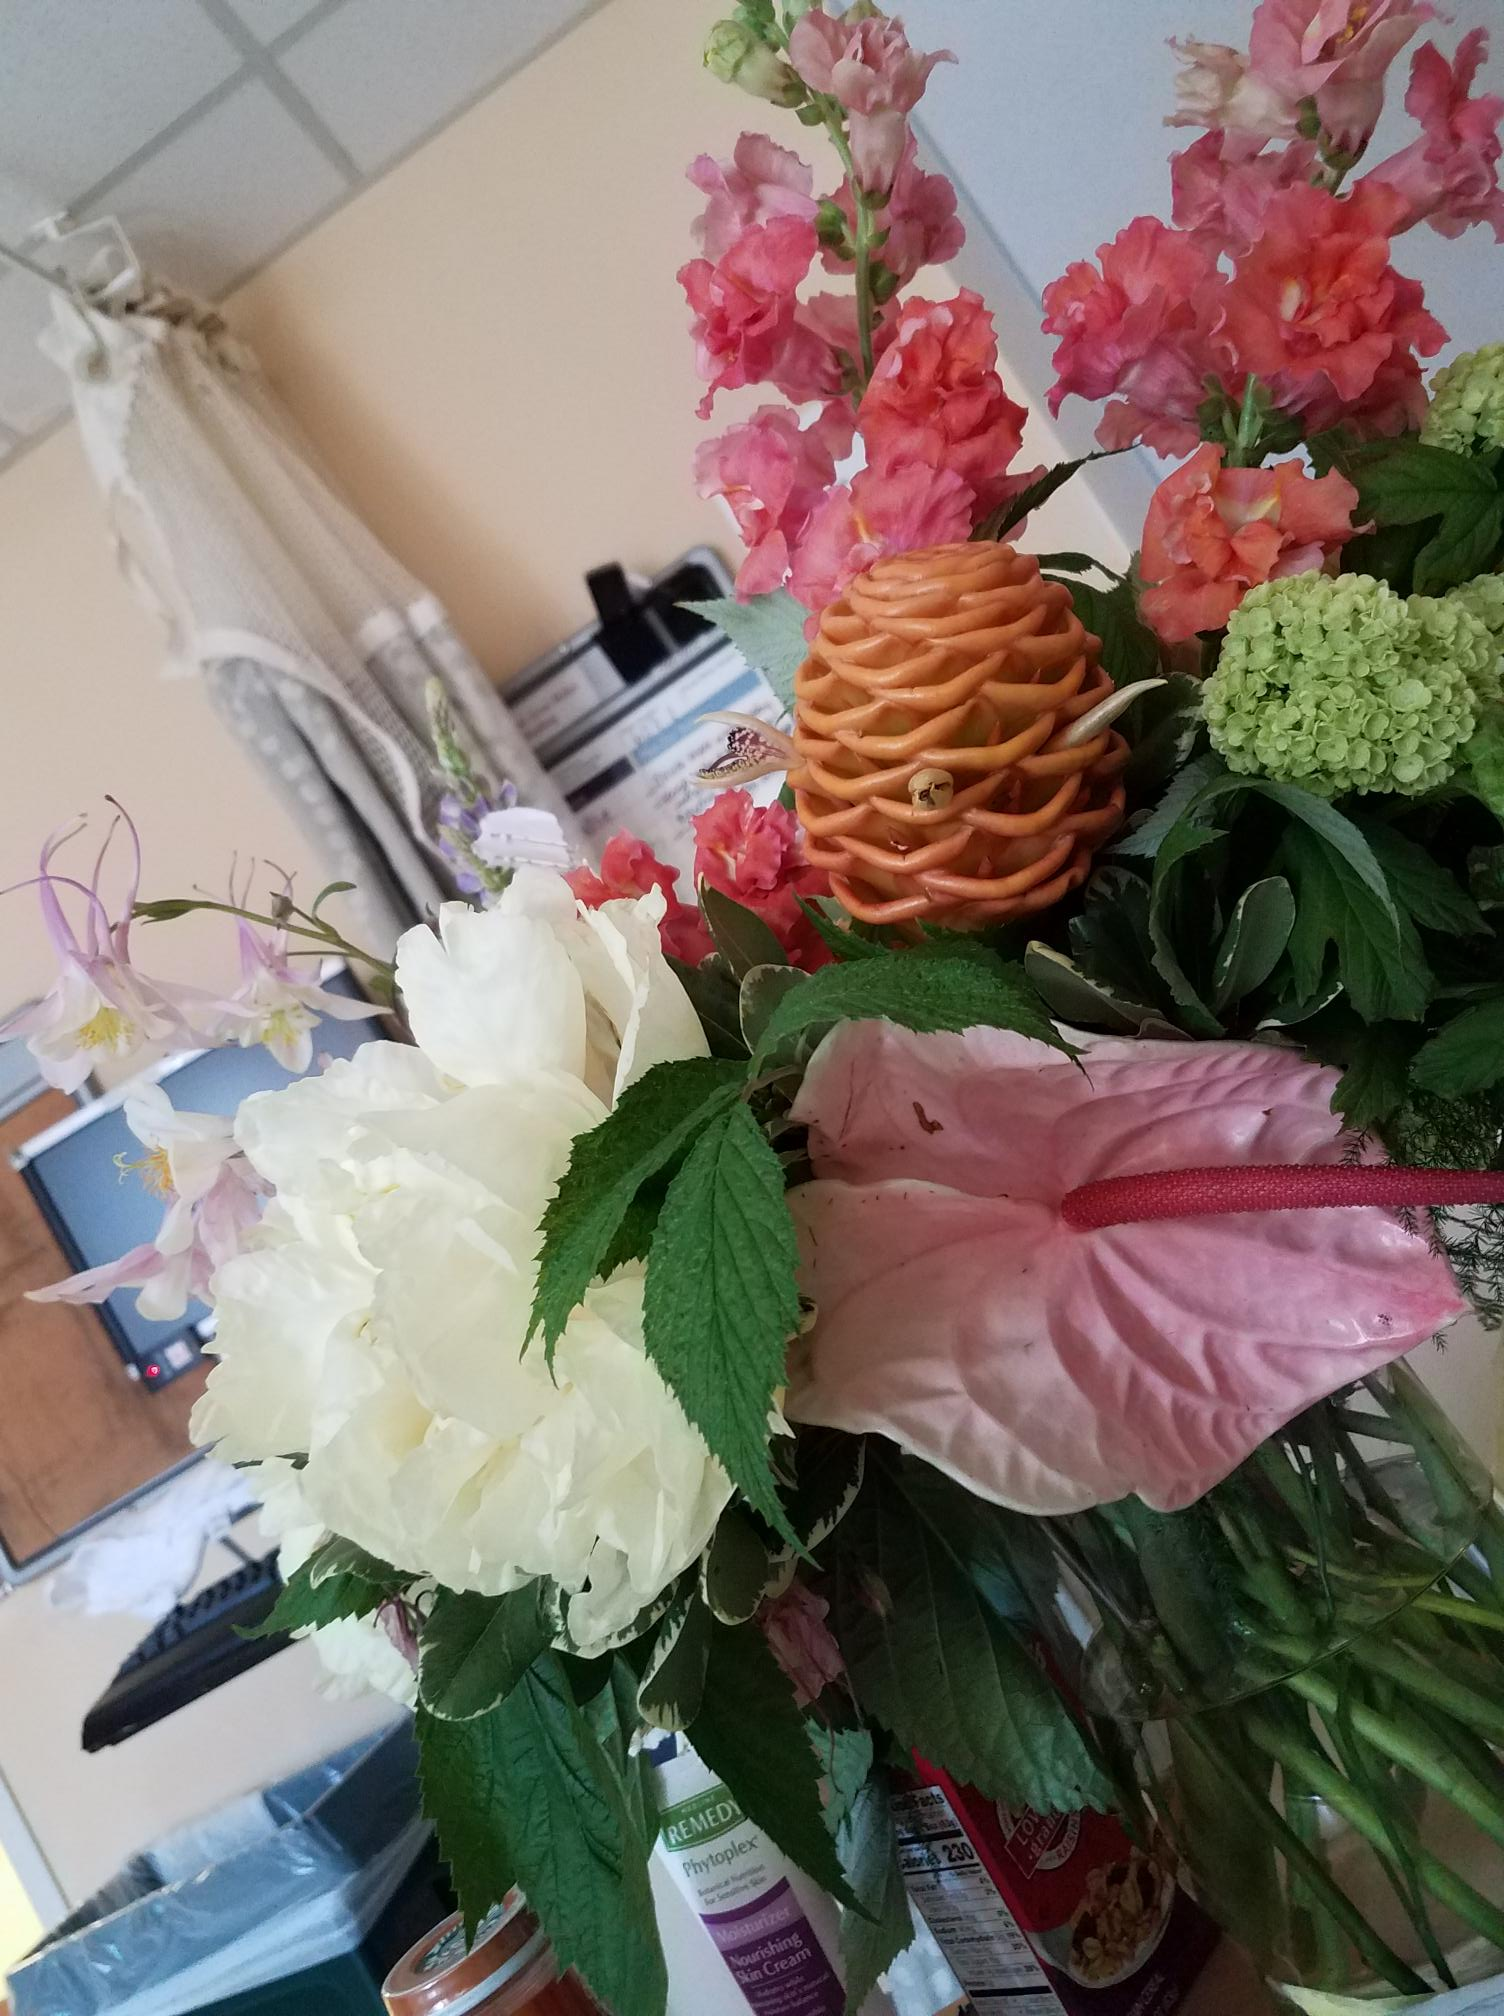 rajalary, julie lary, richard lary, scribbles writing, flowers from Bridge Partners